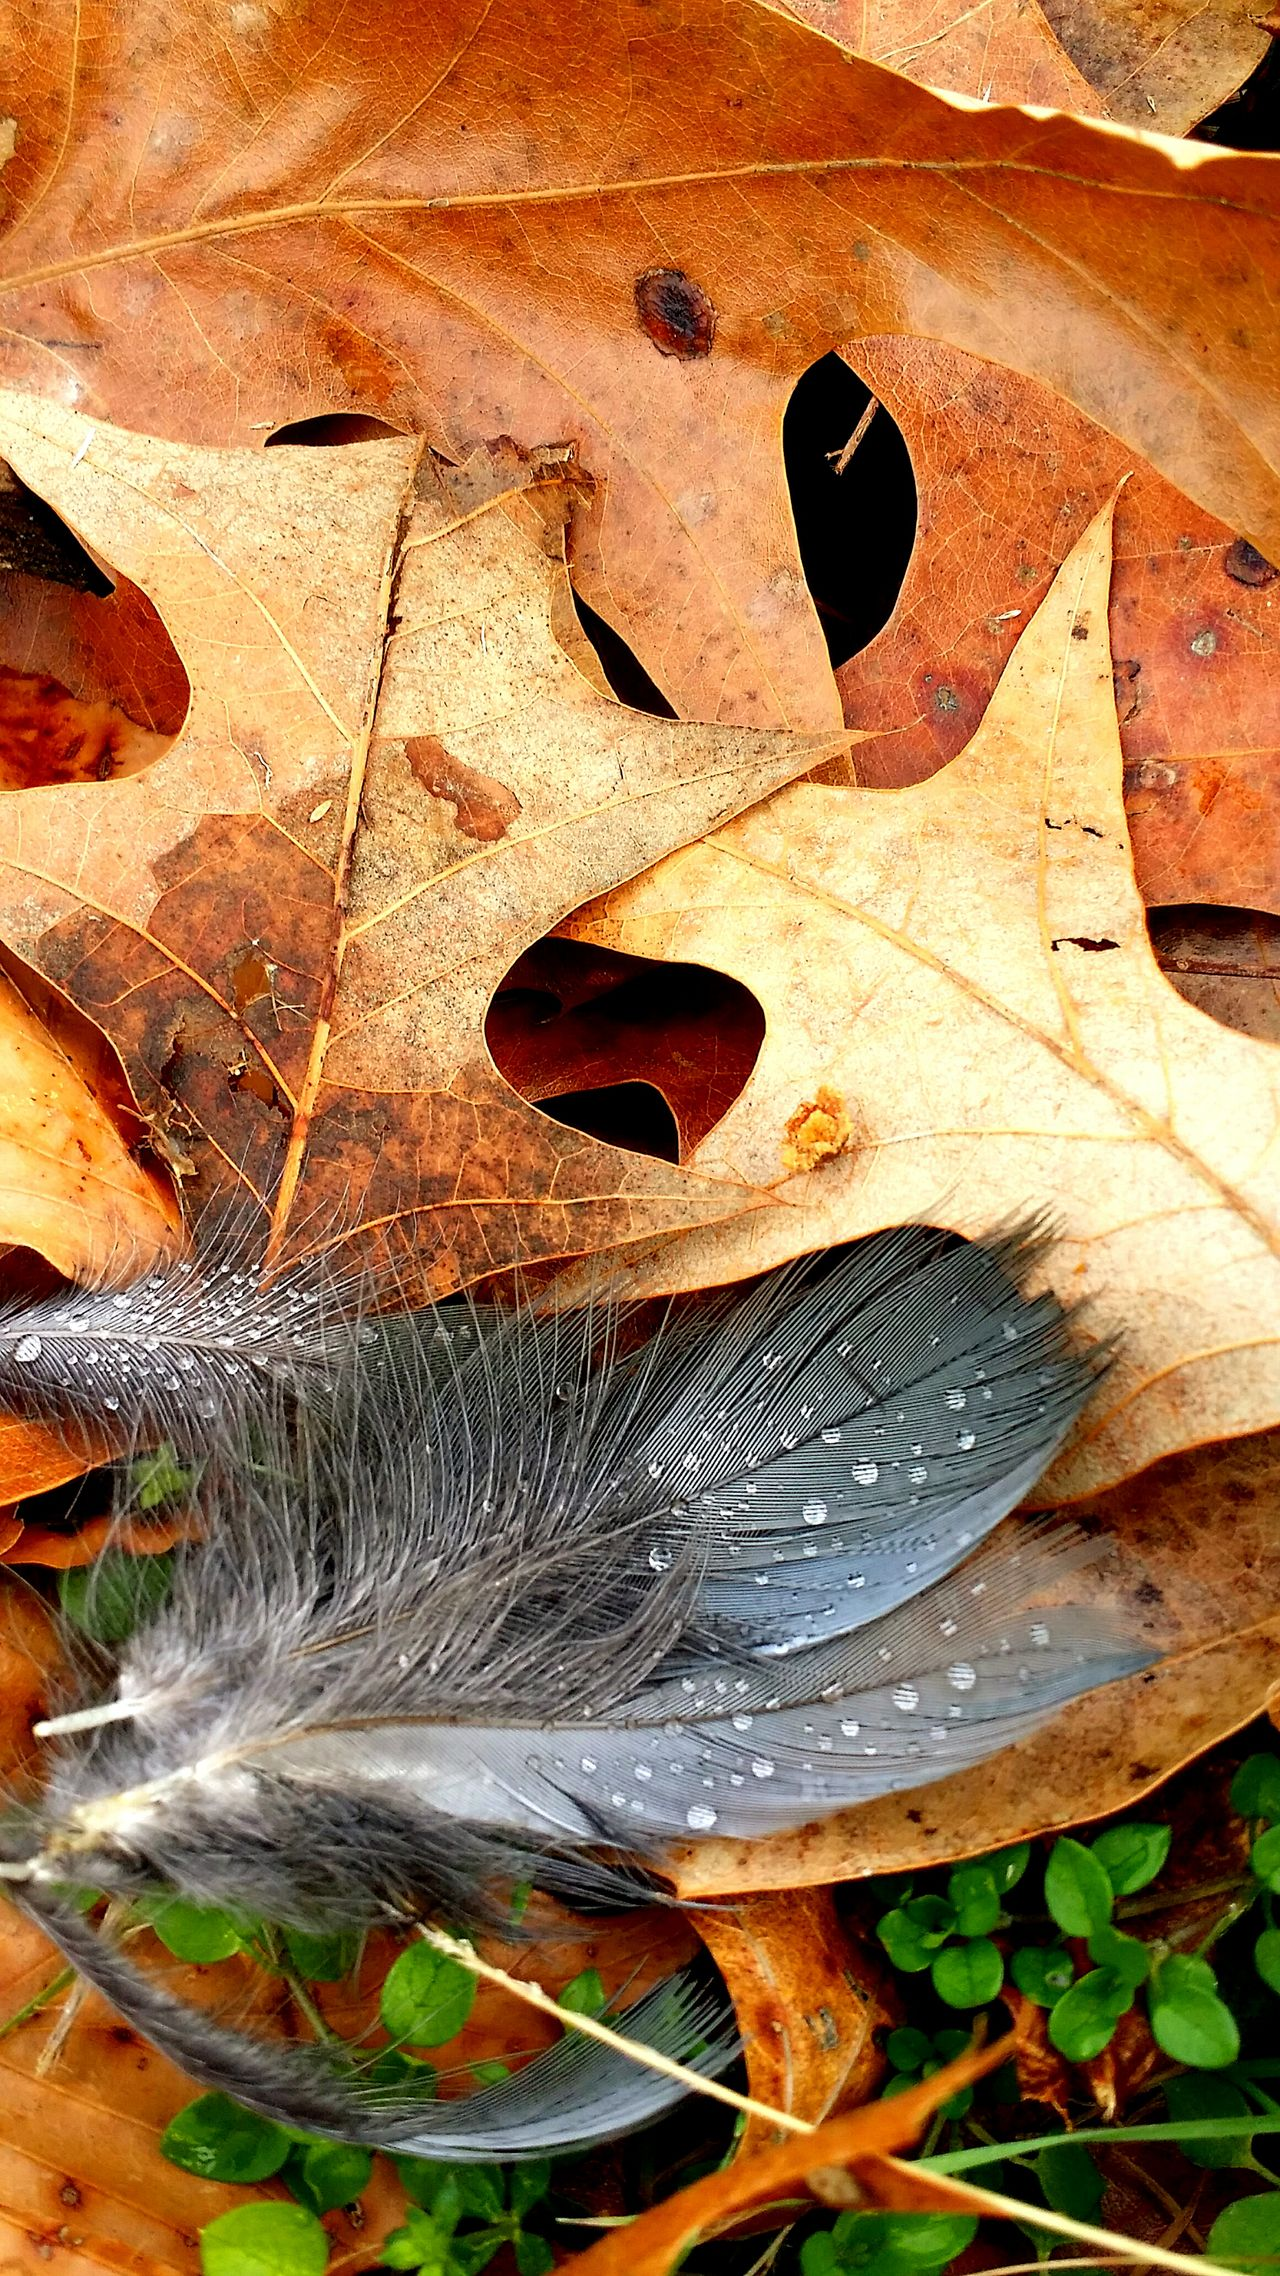 Bald Eagle Feathers Growth Discarded Close-up Water Droplets Leafs Photography